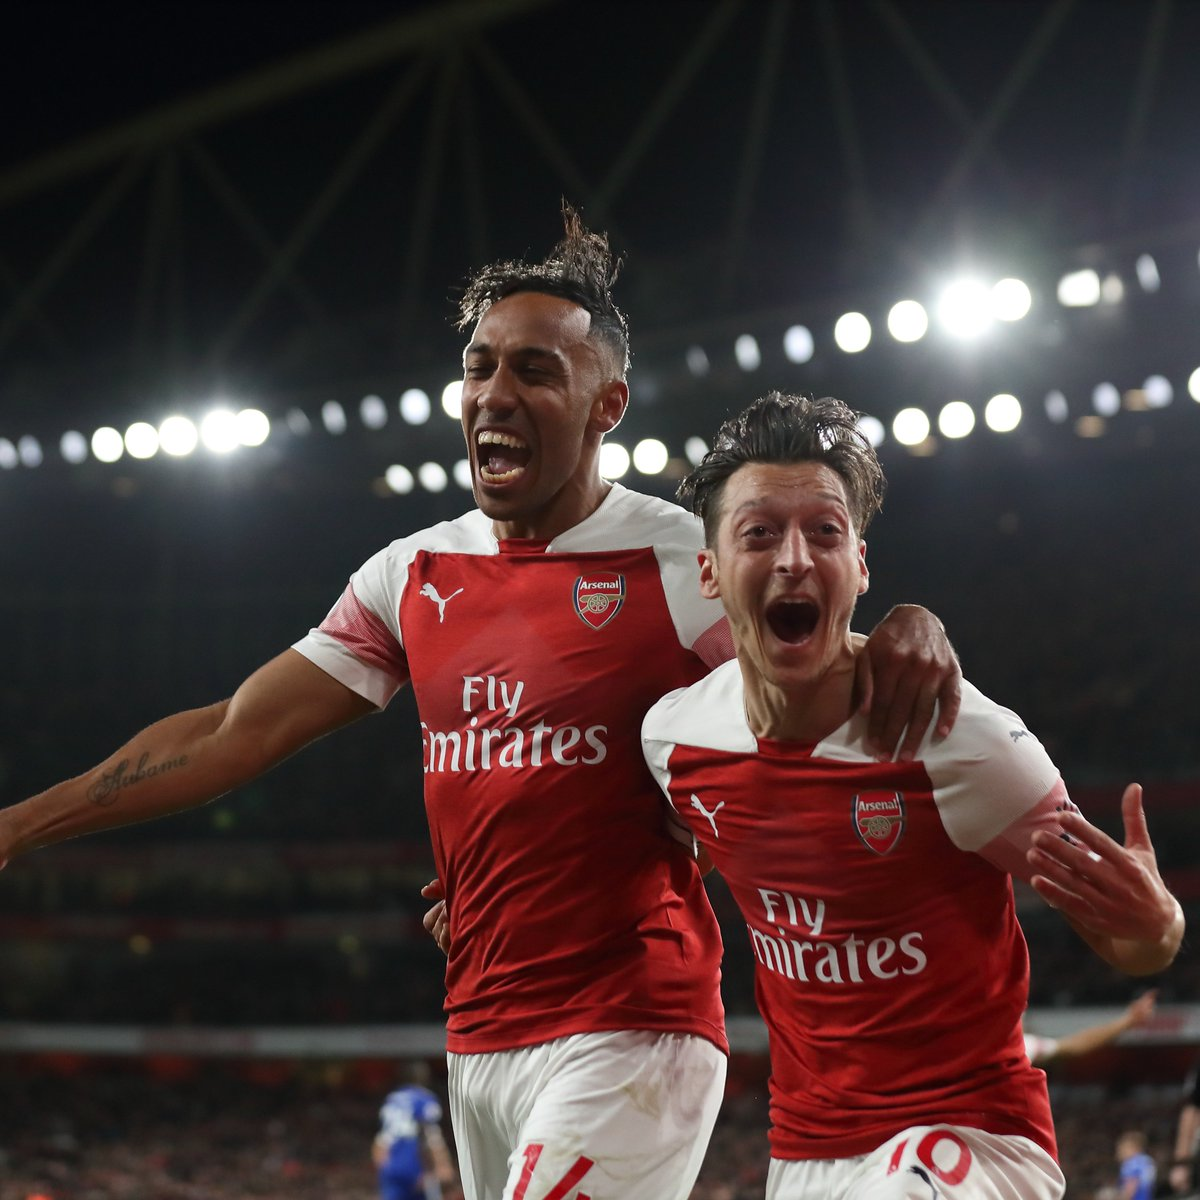 2️⃣ goals in 130 seconds  We're all @MesutOzil1088 right now 😆